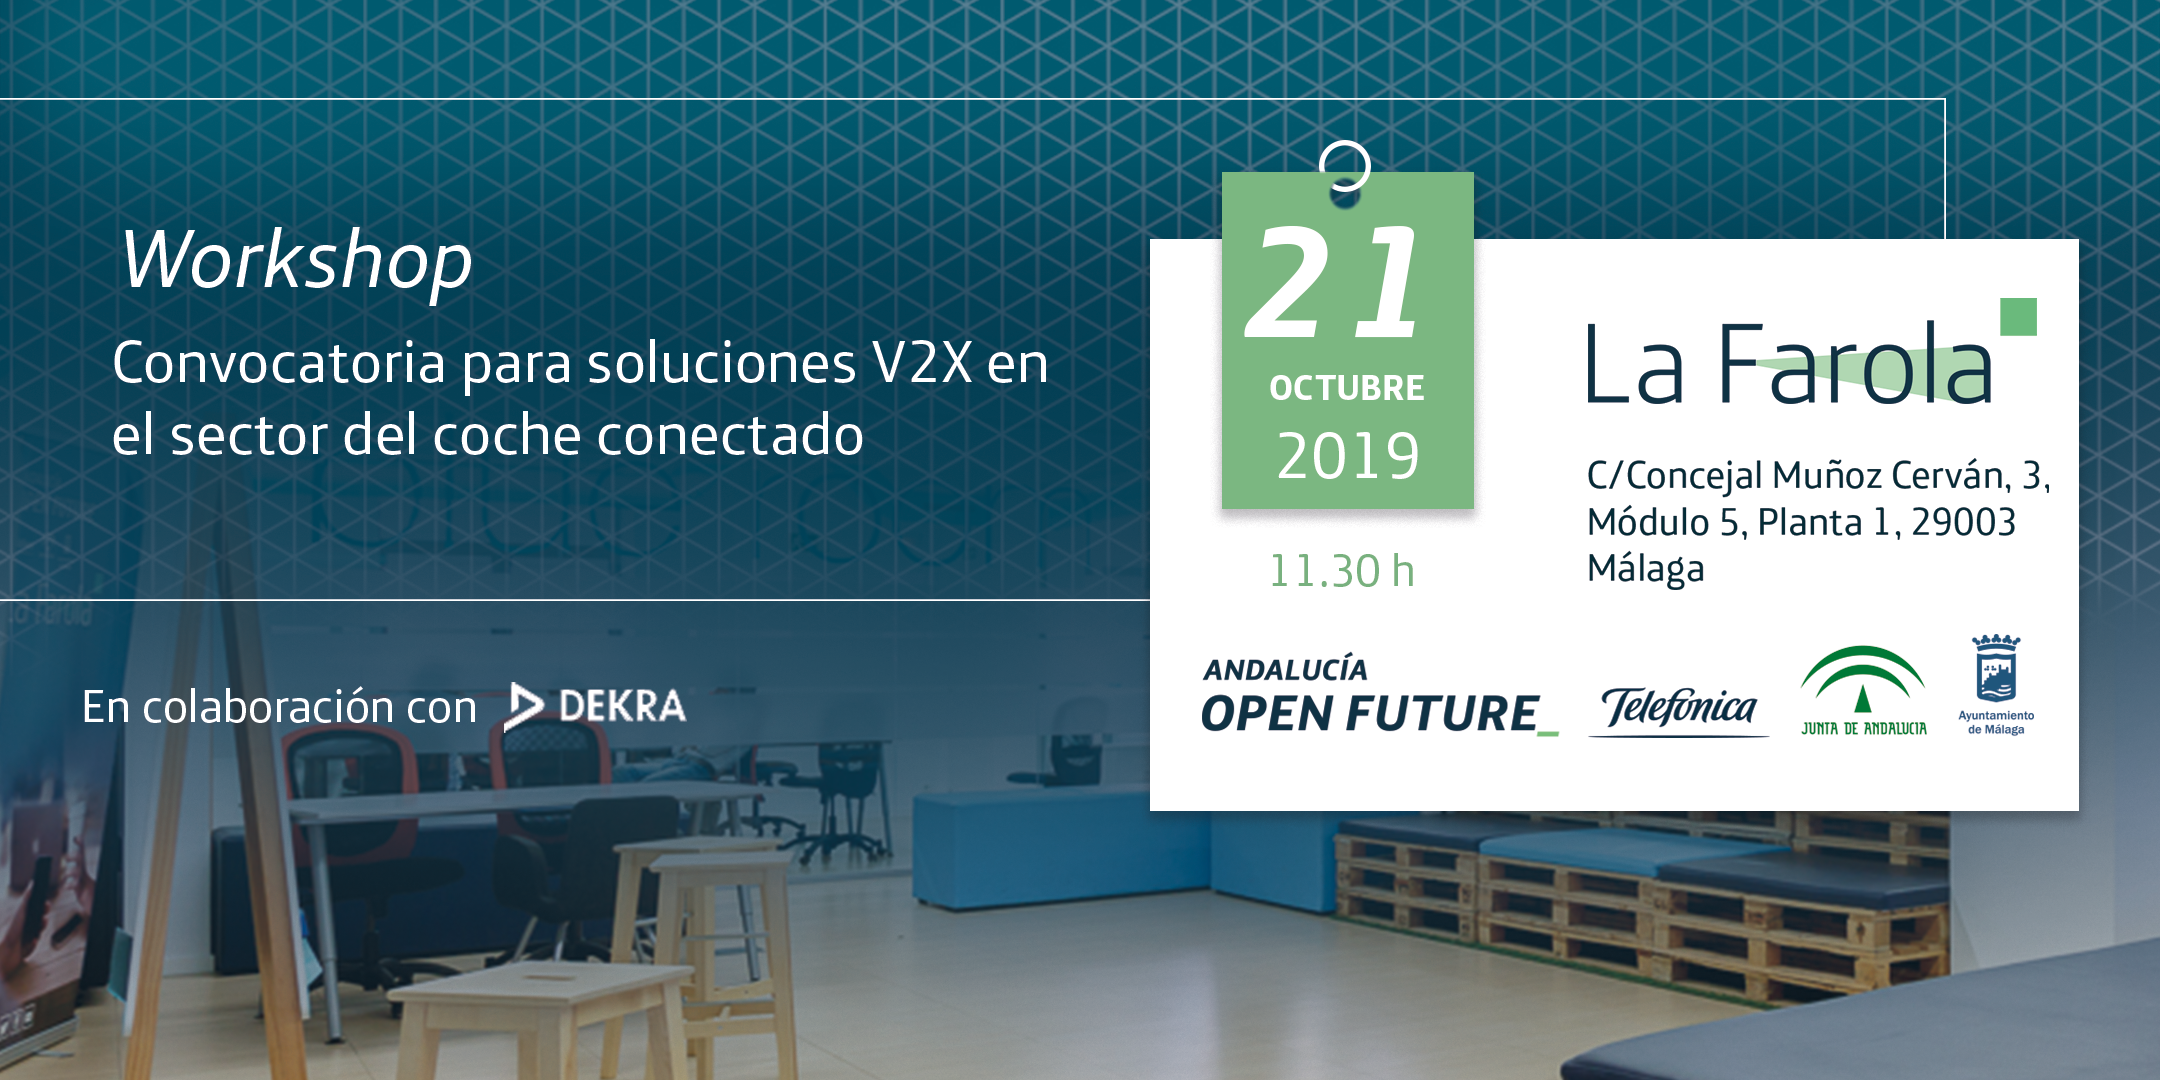 workshop convocatoria para soluciones V2X